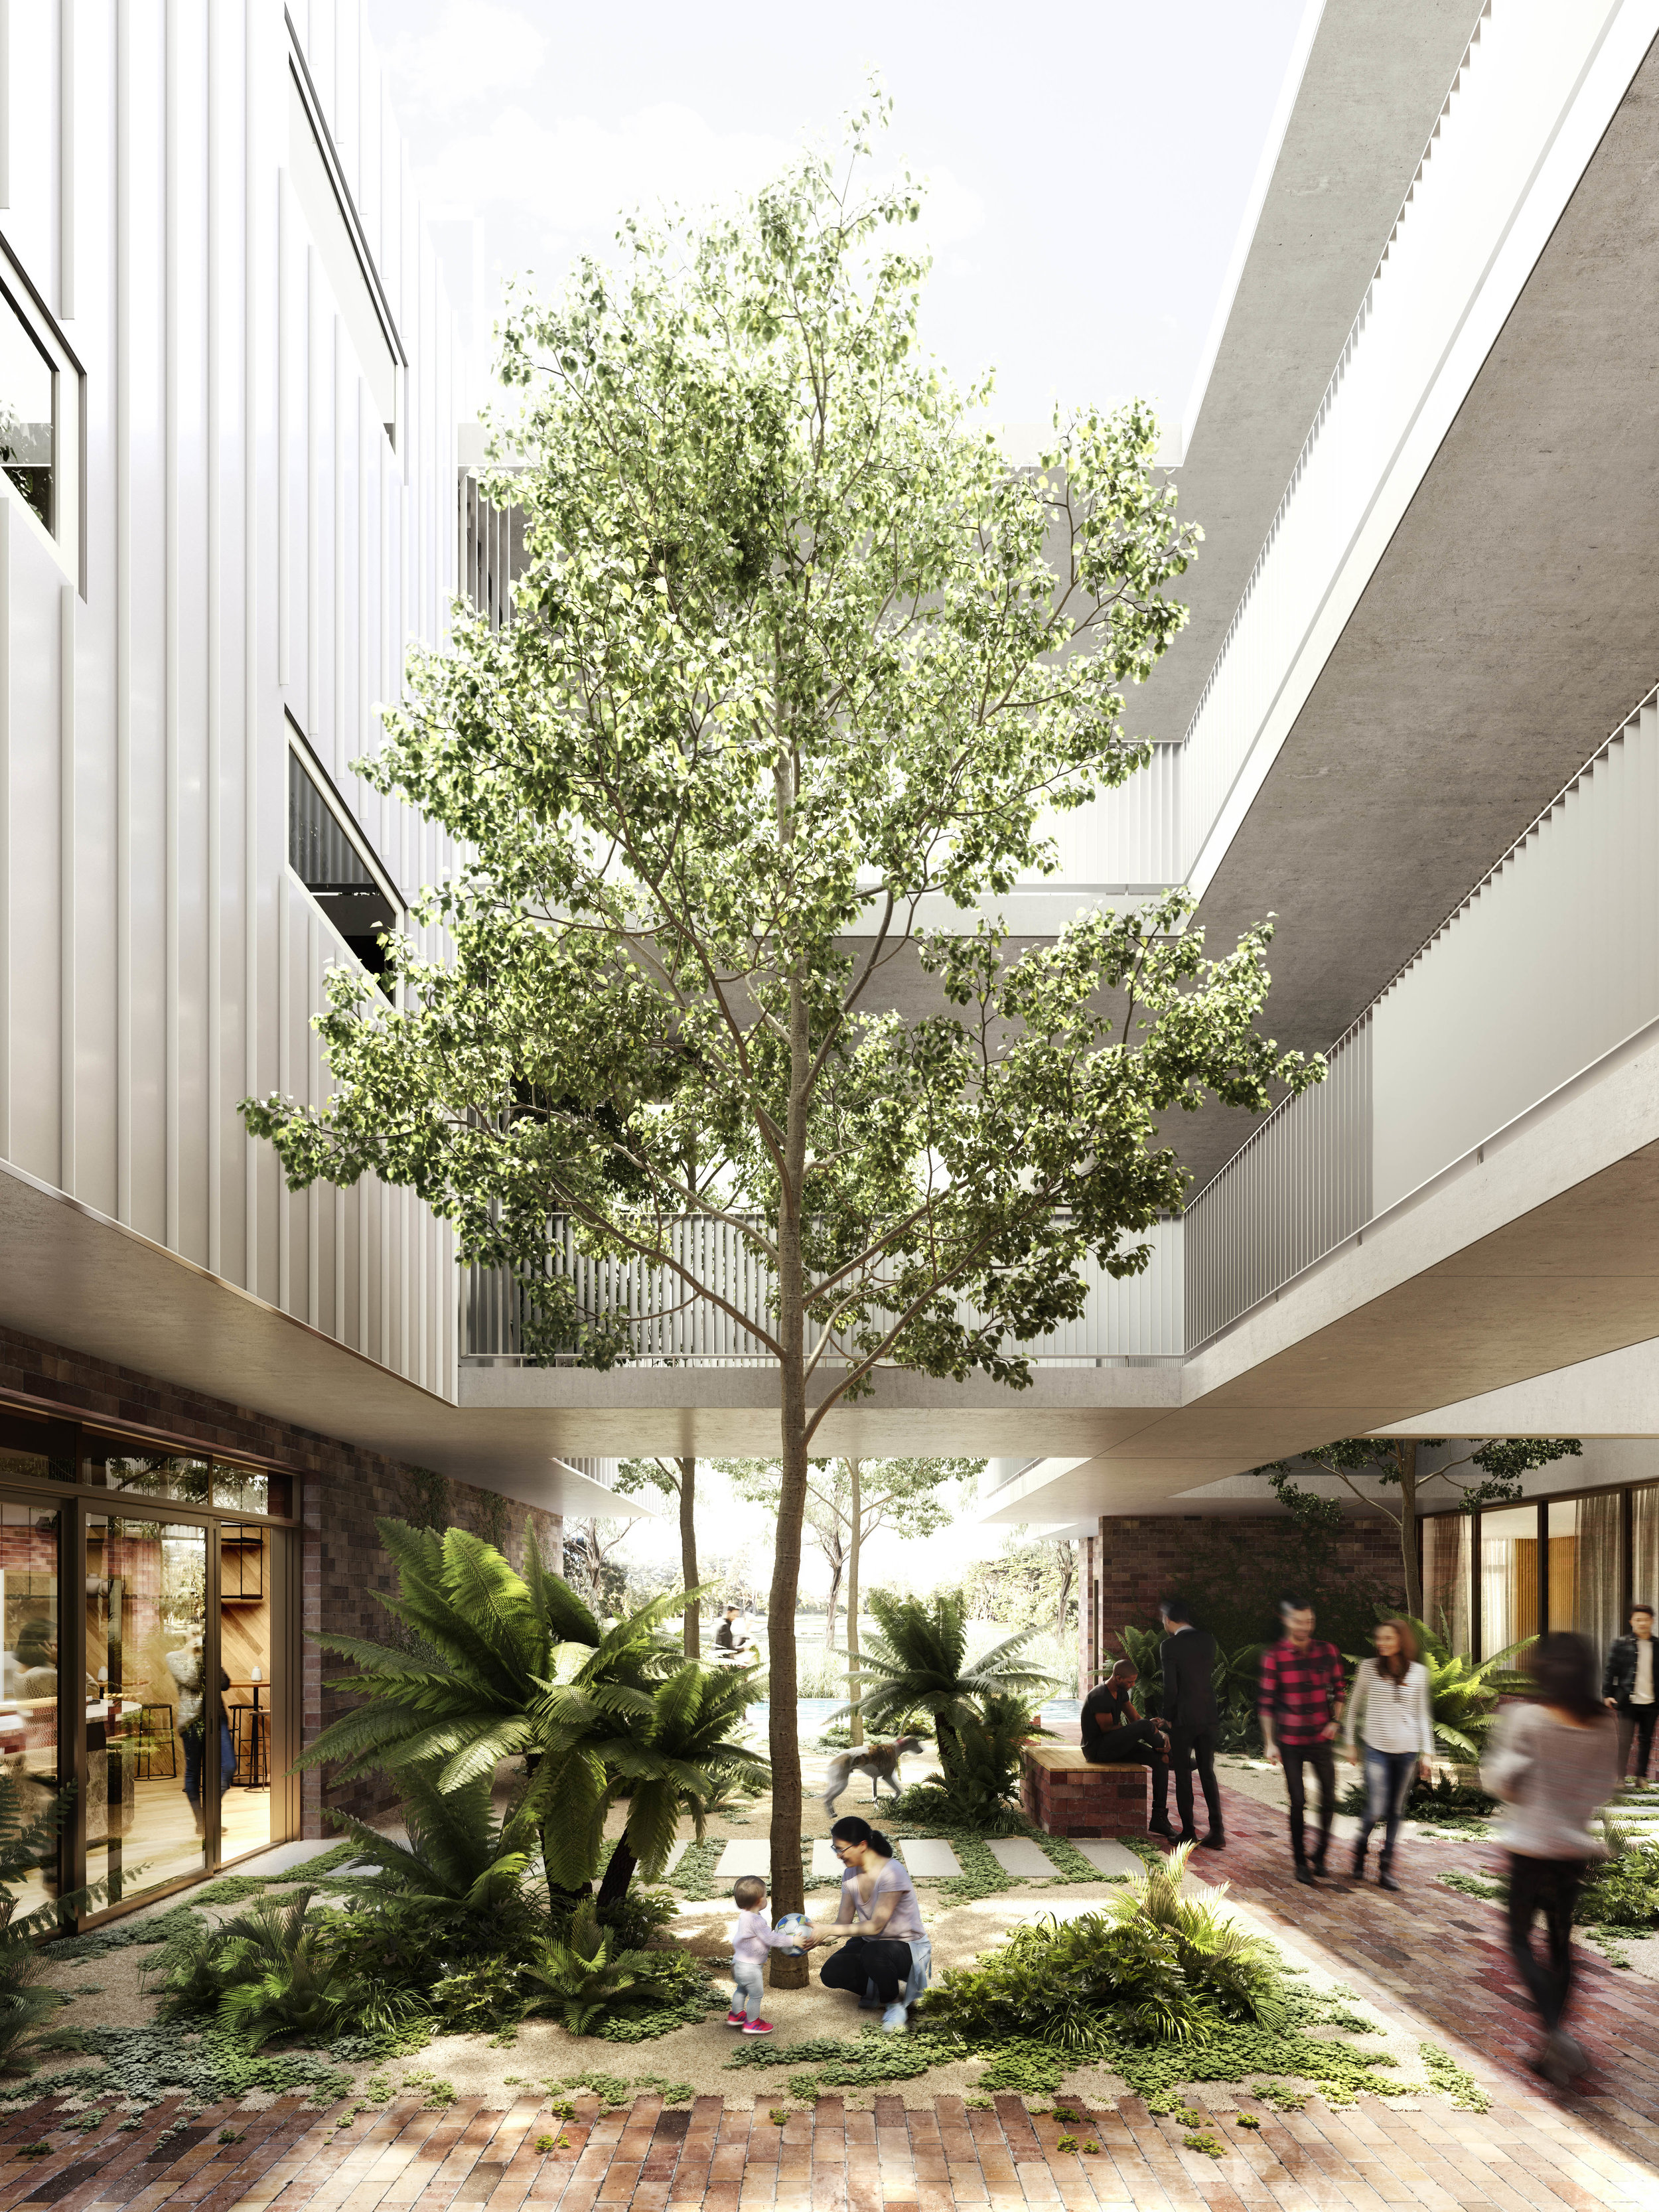 Nightingale Fremantle - sun drenched courtyards and values-aligned commercial tenancies encourage connection to both community and nature. Render: Mr. P Studios